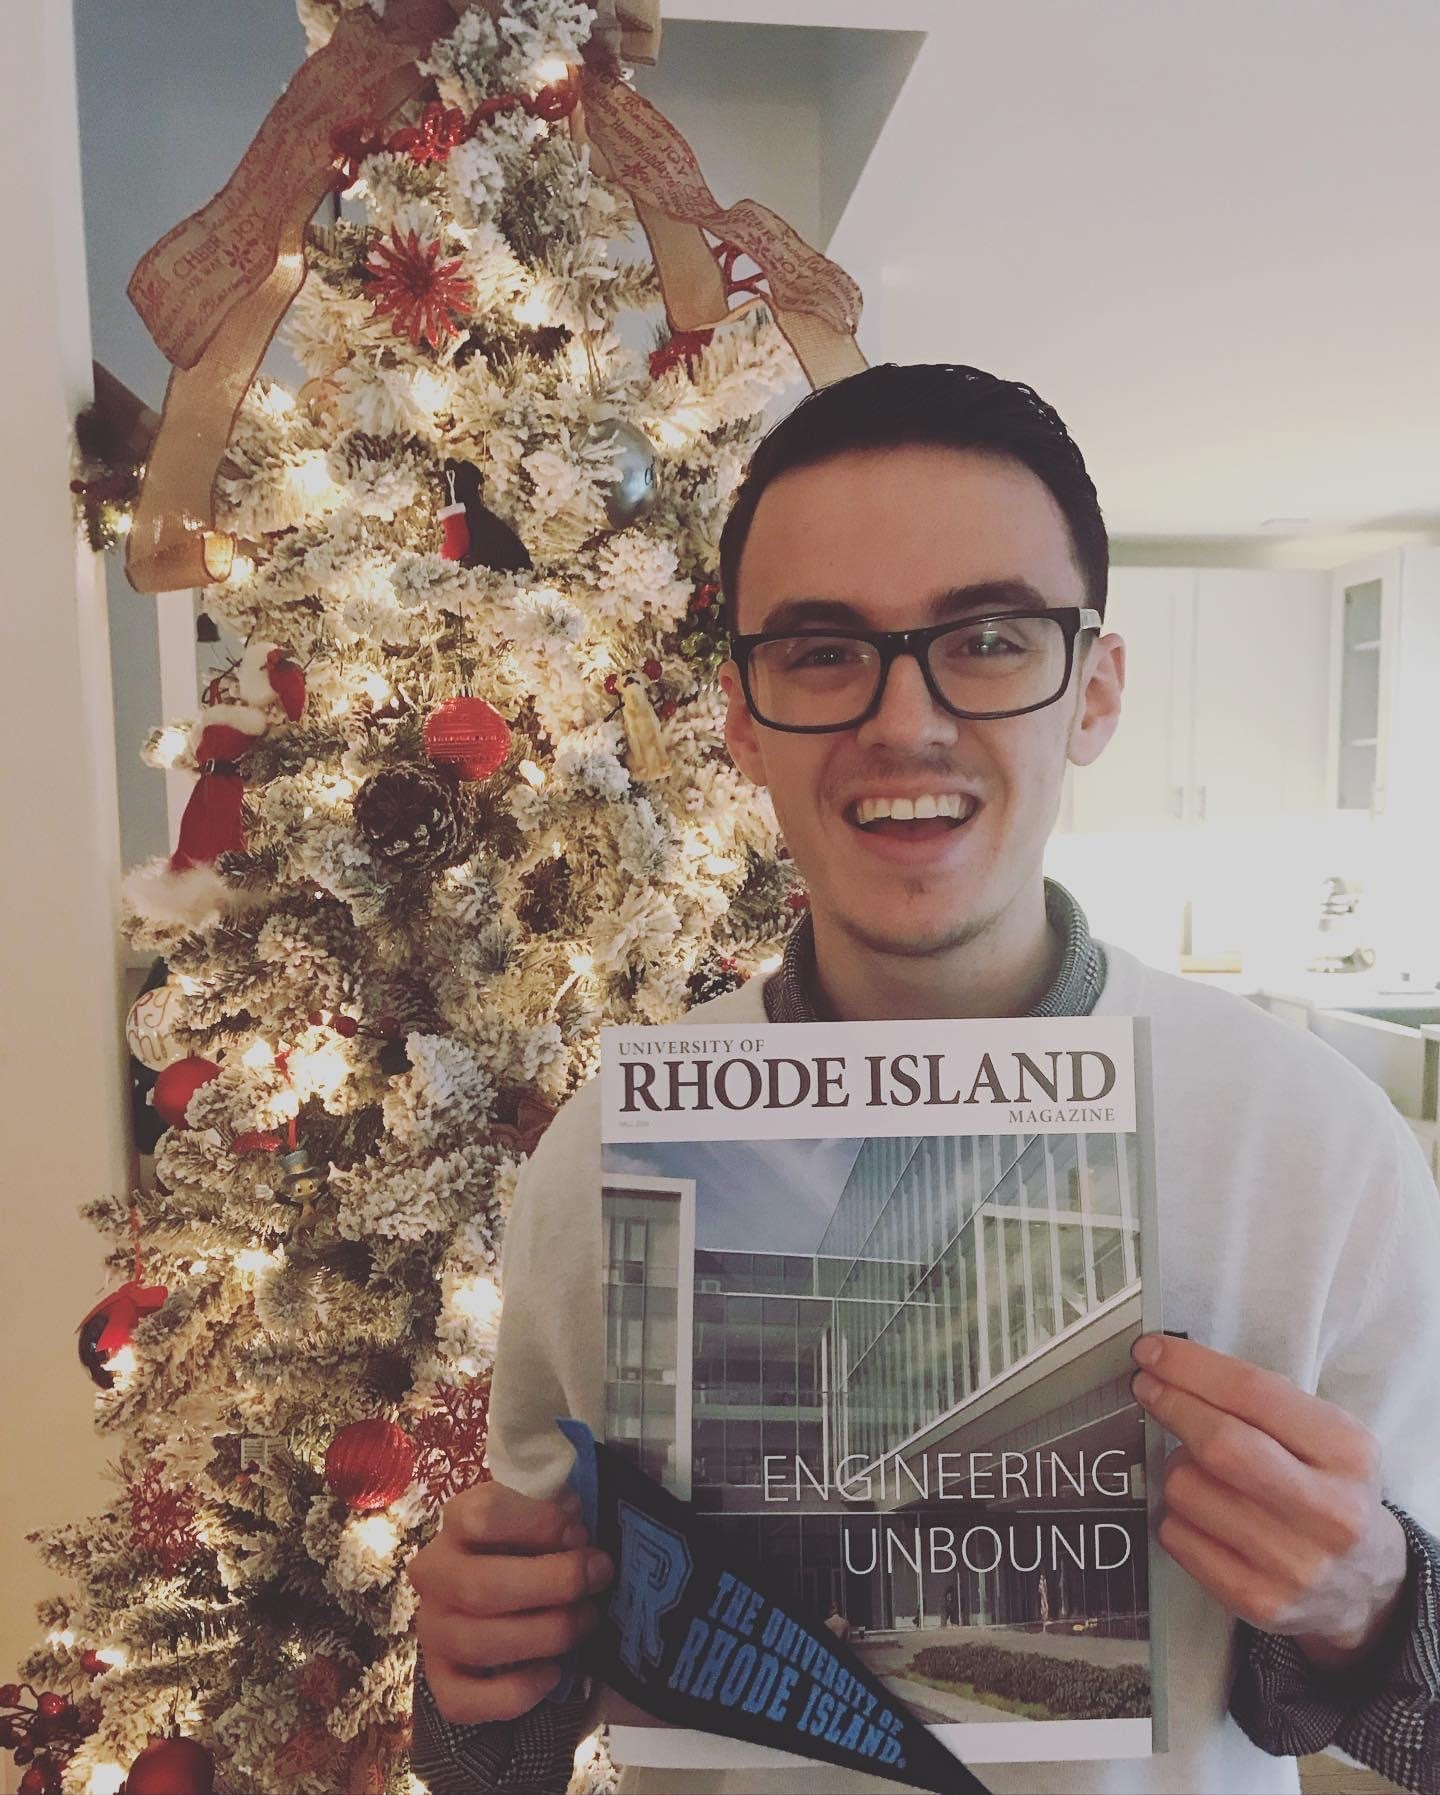 Tristan Halsey after recieving his acceptance to The University of Rhode Island.